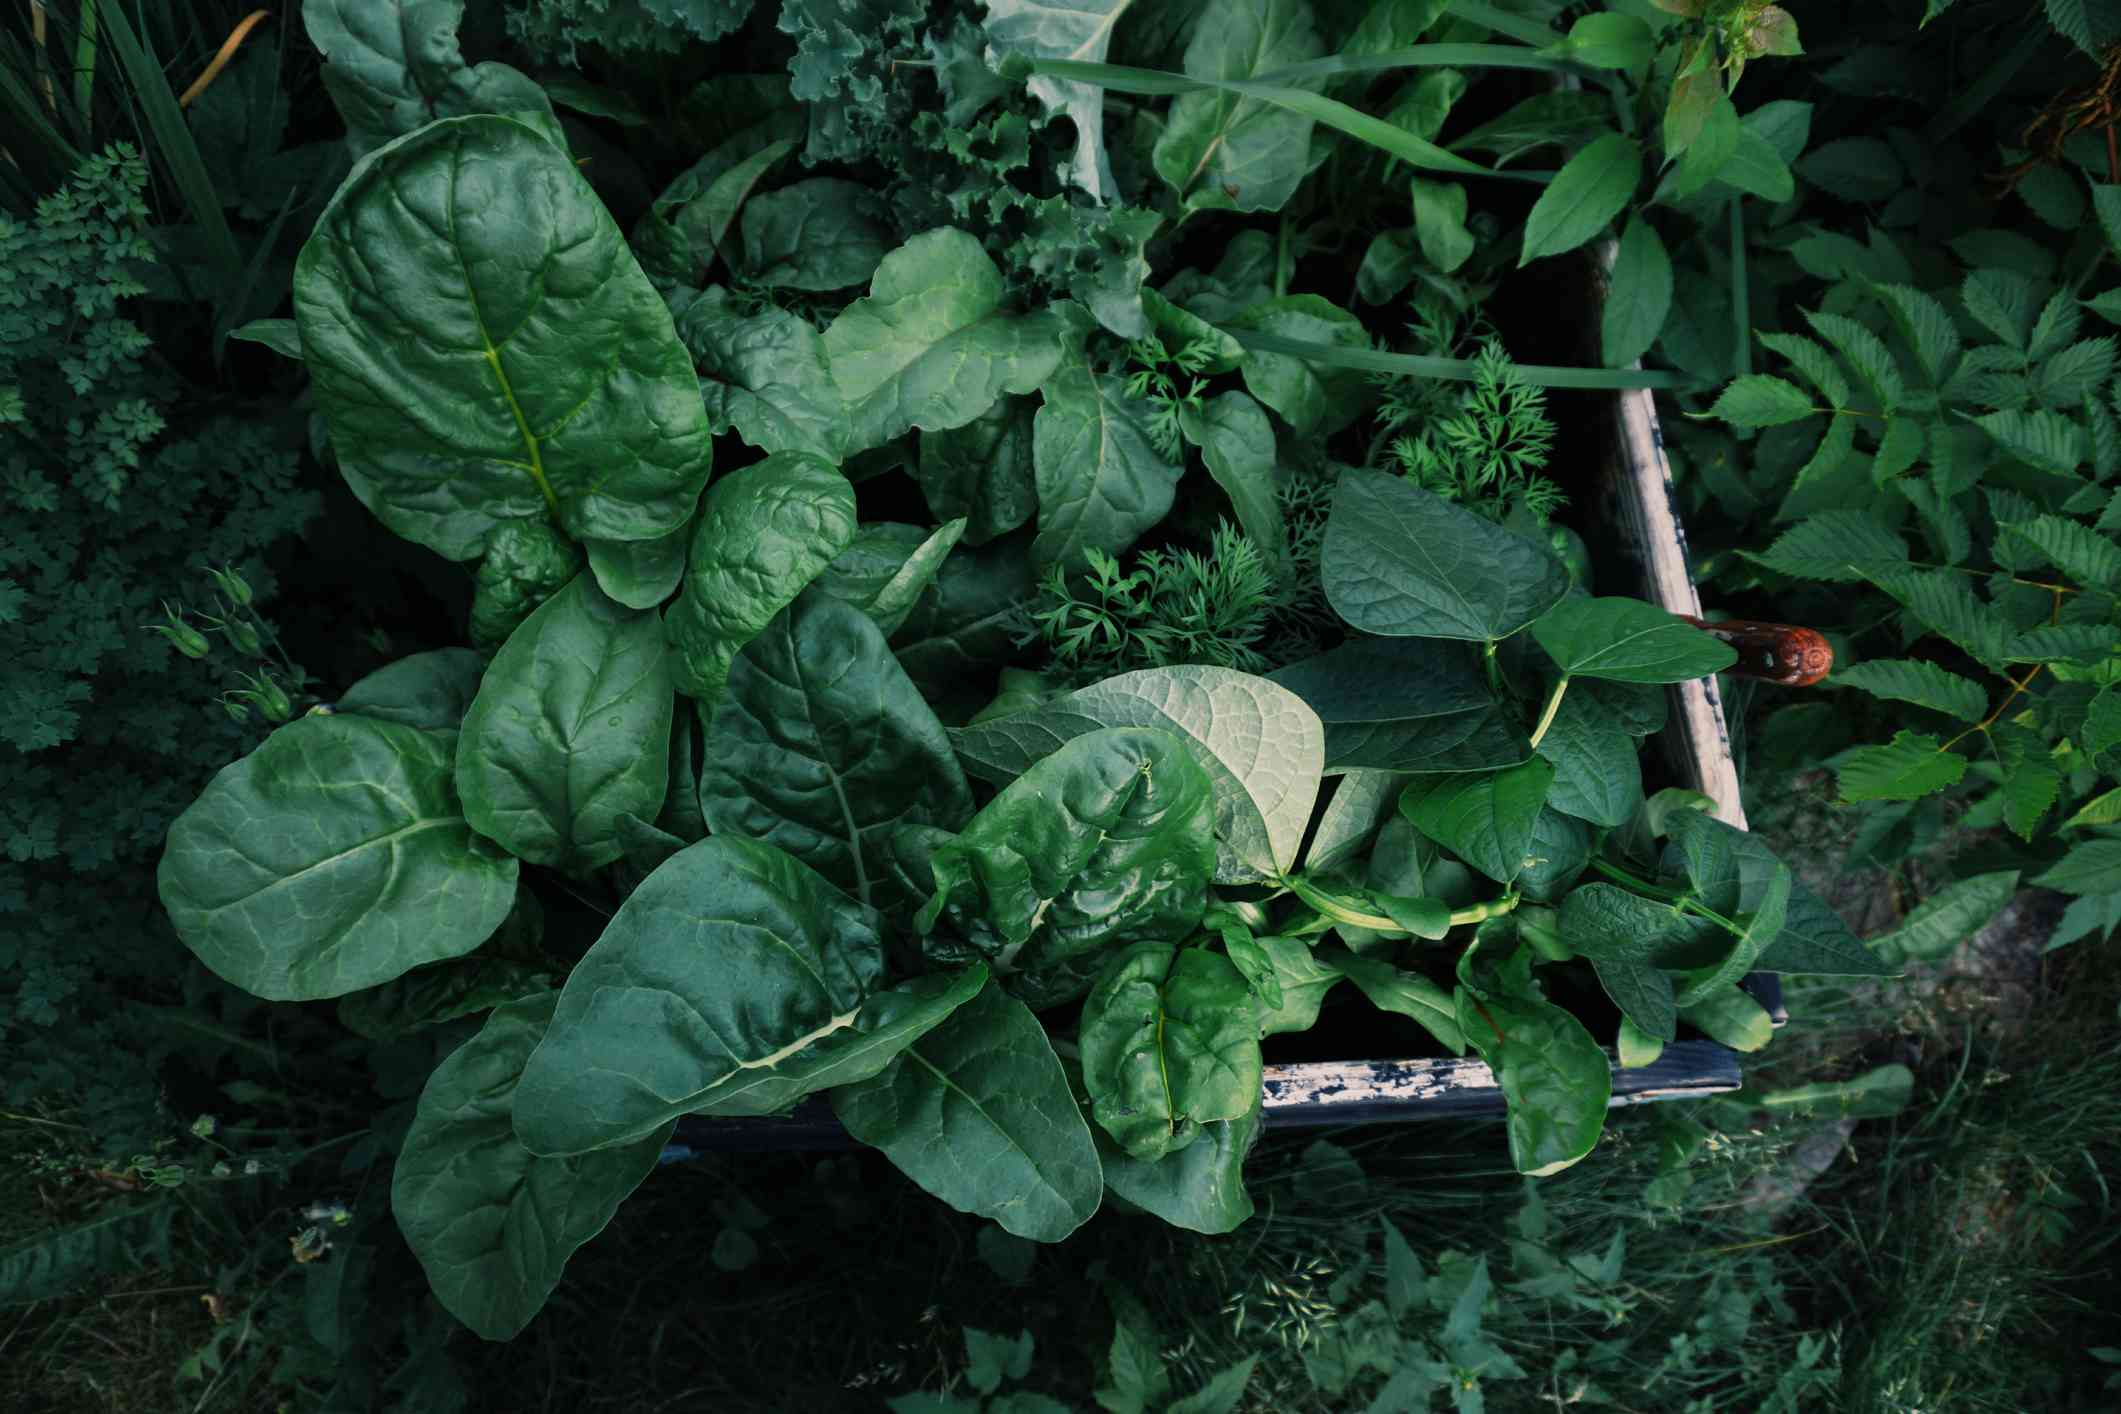 Large-leaf spinach growing in a garden